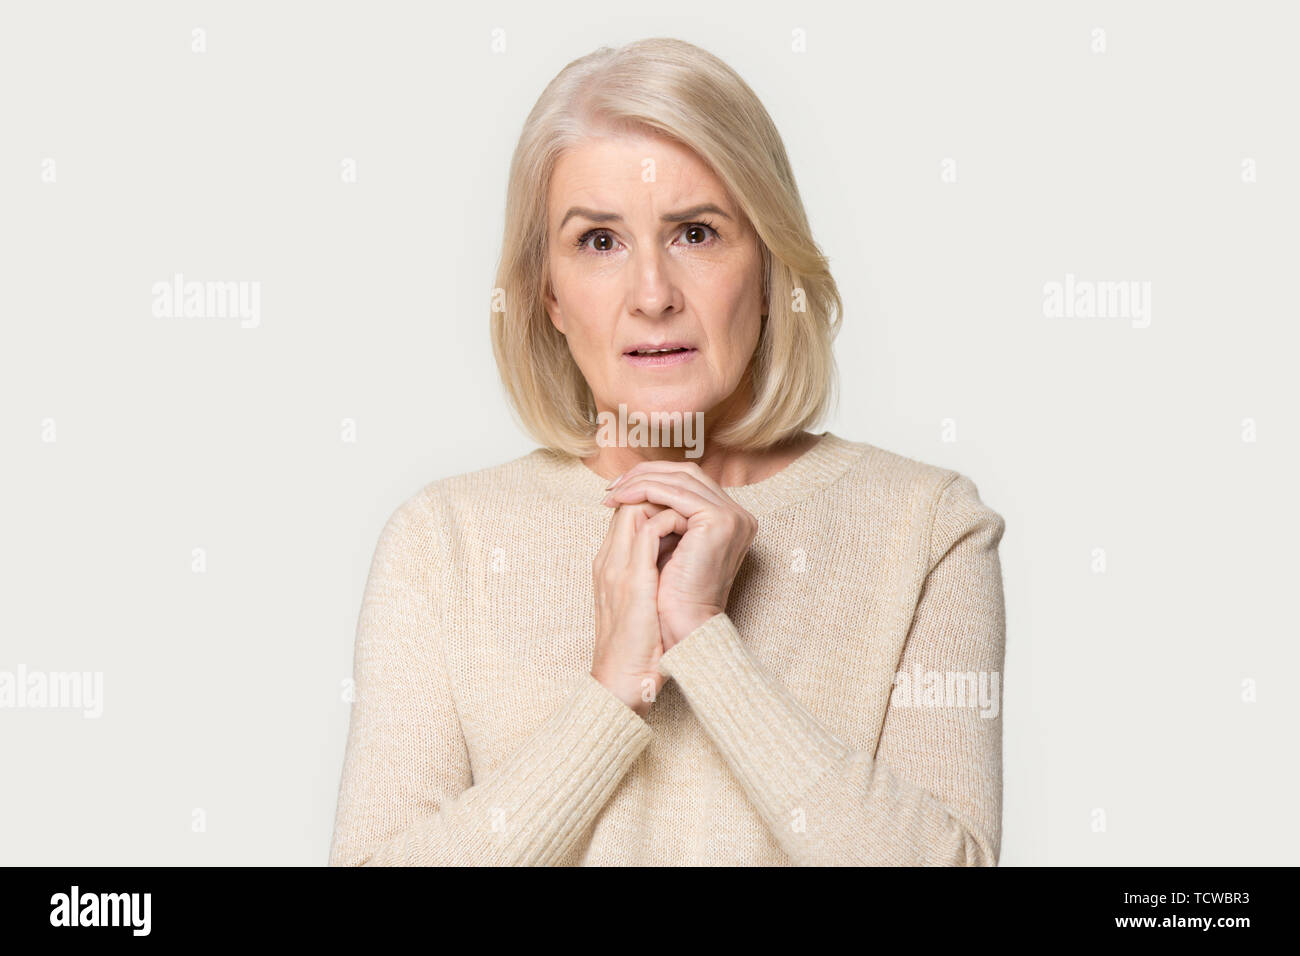 Anxious senior woman folded hands together isolated on grey background - Stock Image